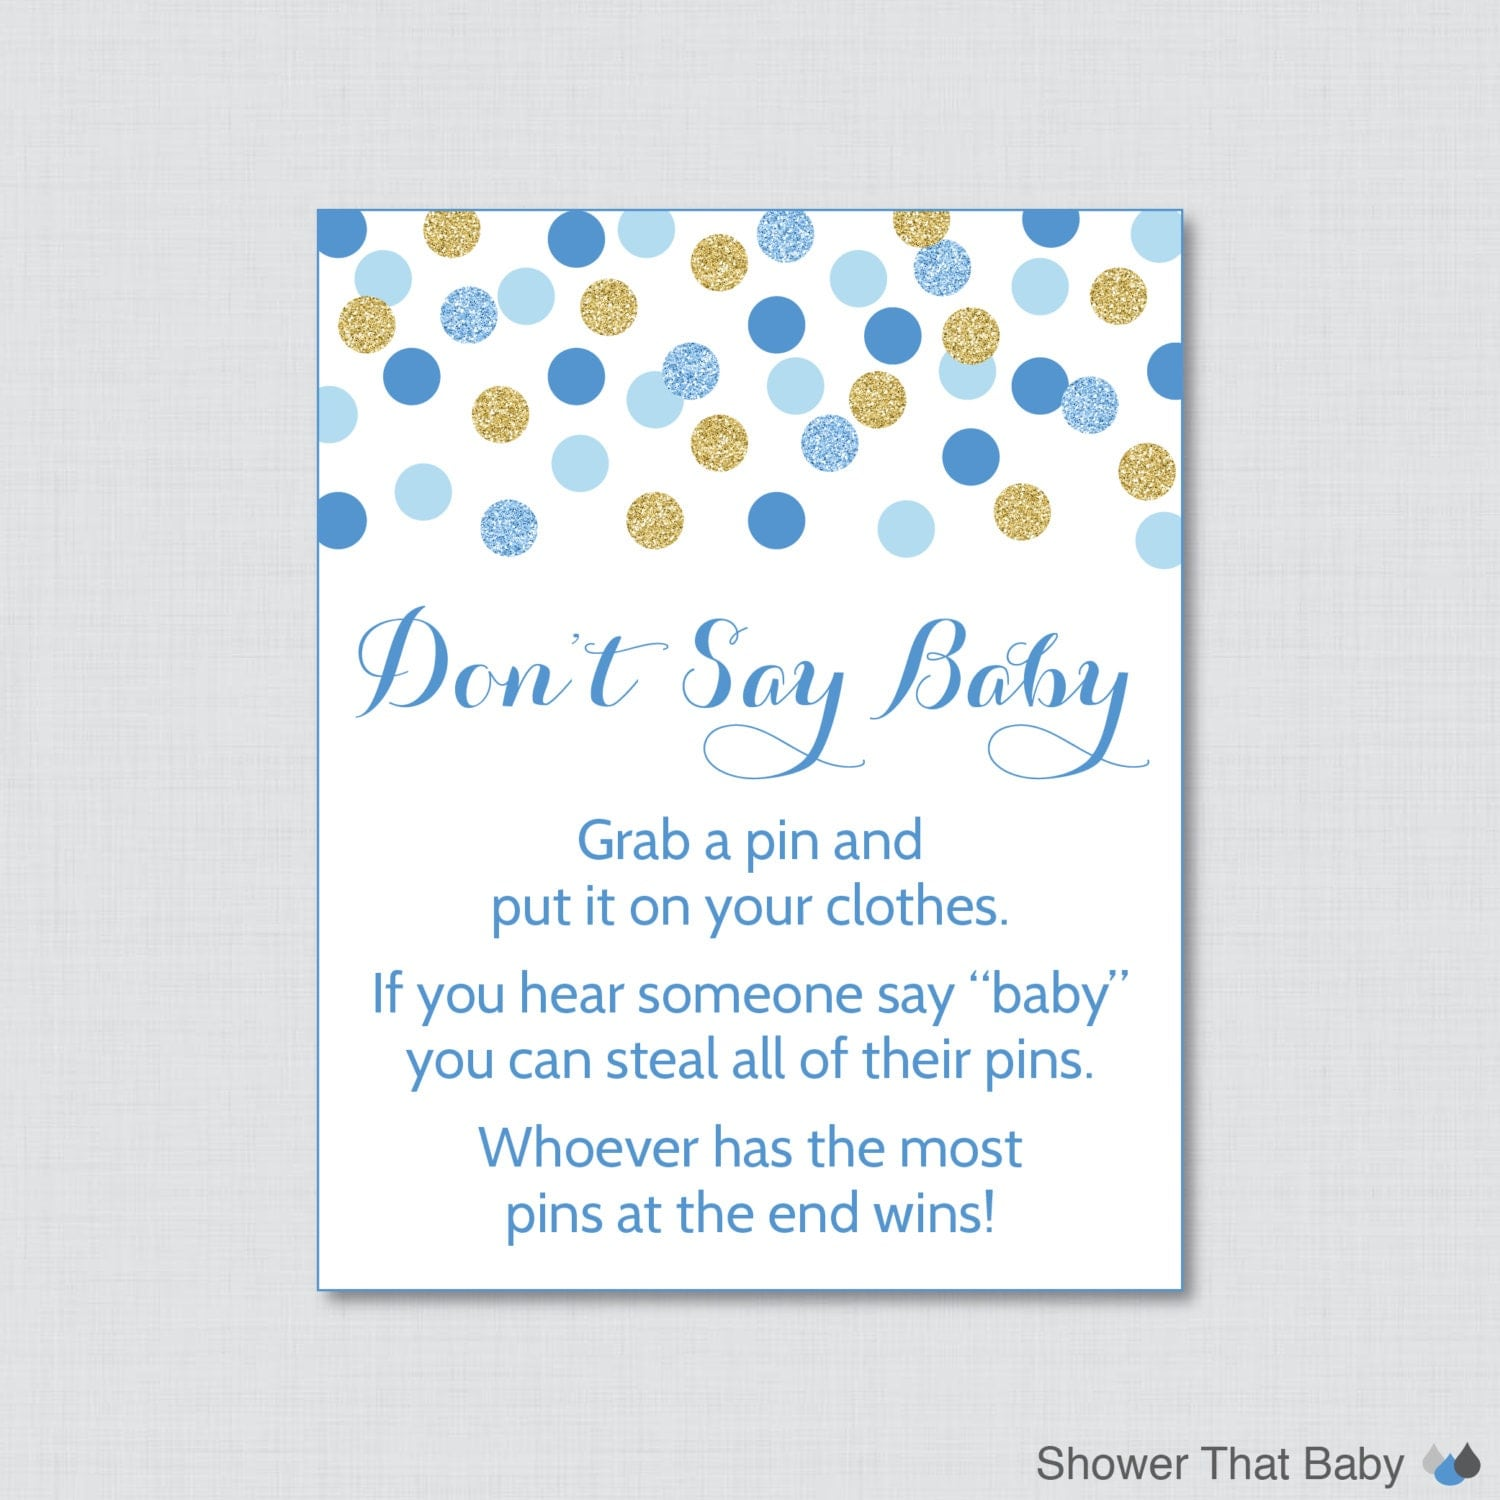 Gutsy image intended for free don't say baby printable